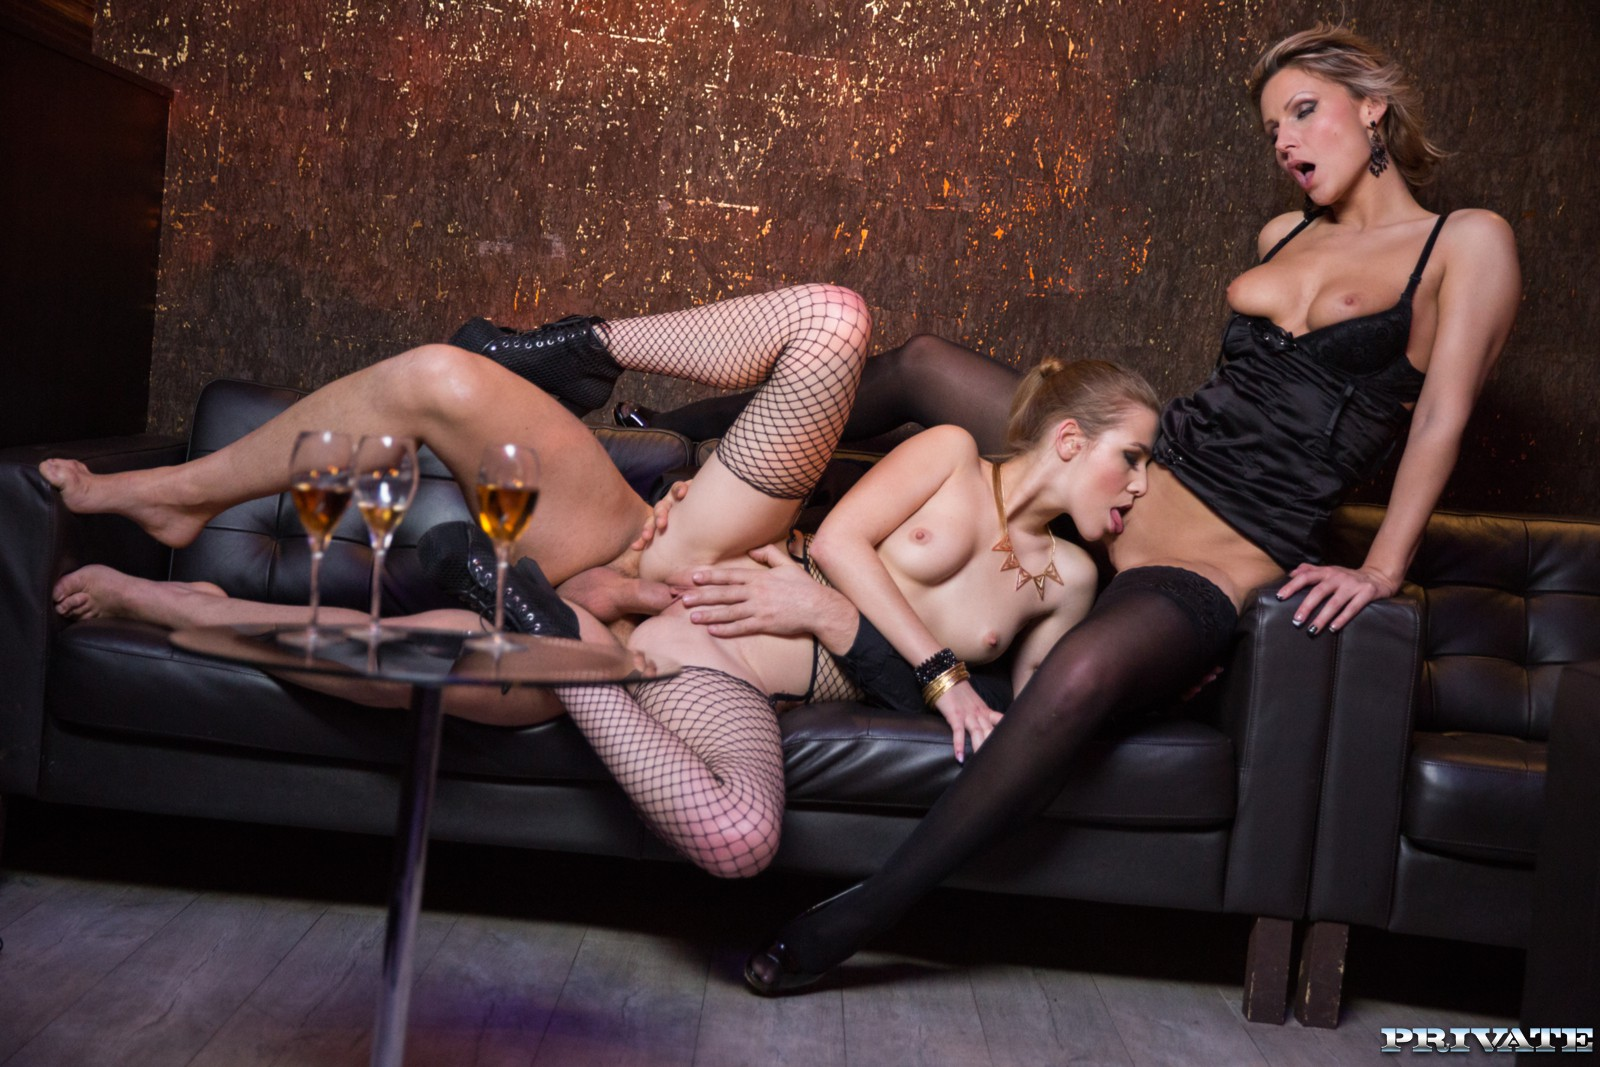 VIP Treatment Given by Alexis and Samantha Is Anal and a Threeway - Private photo